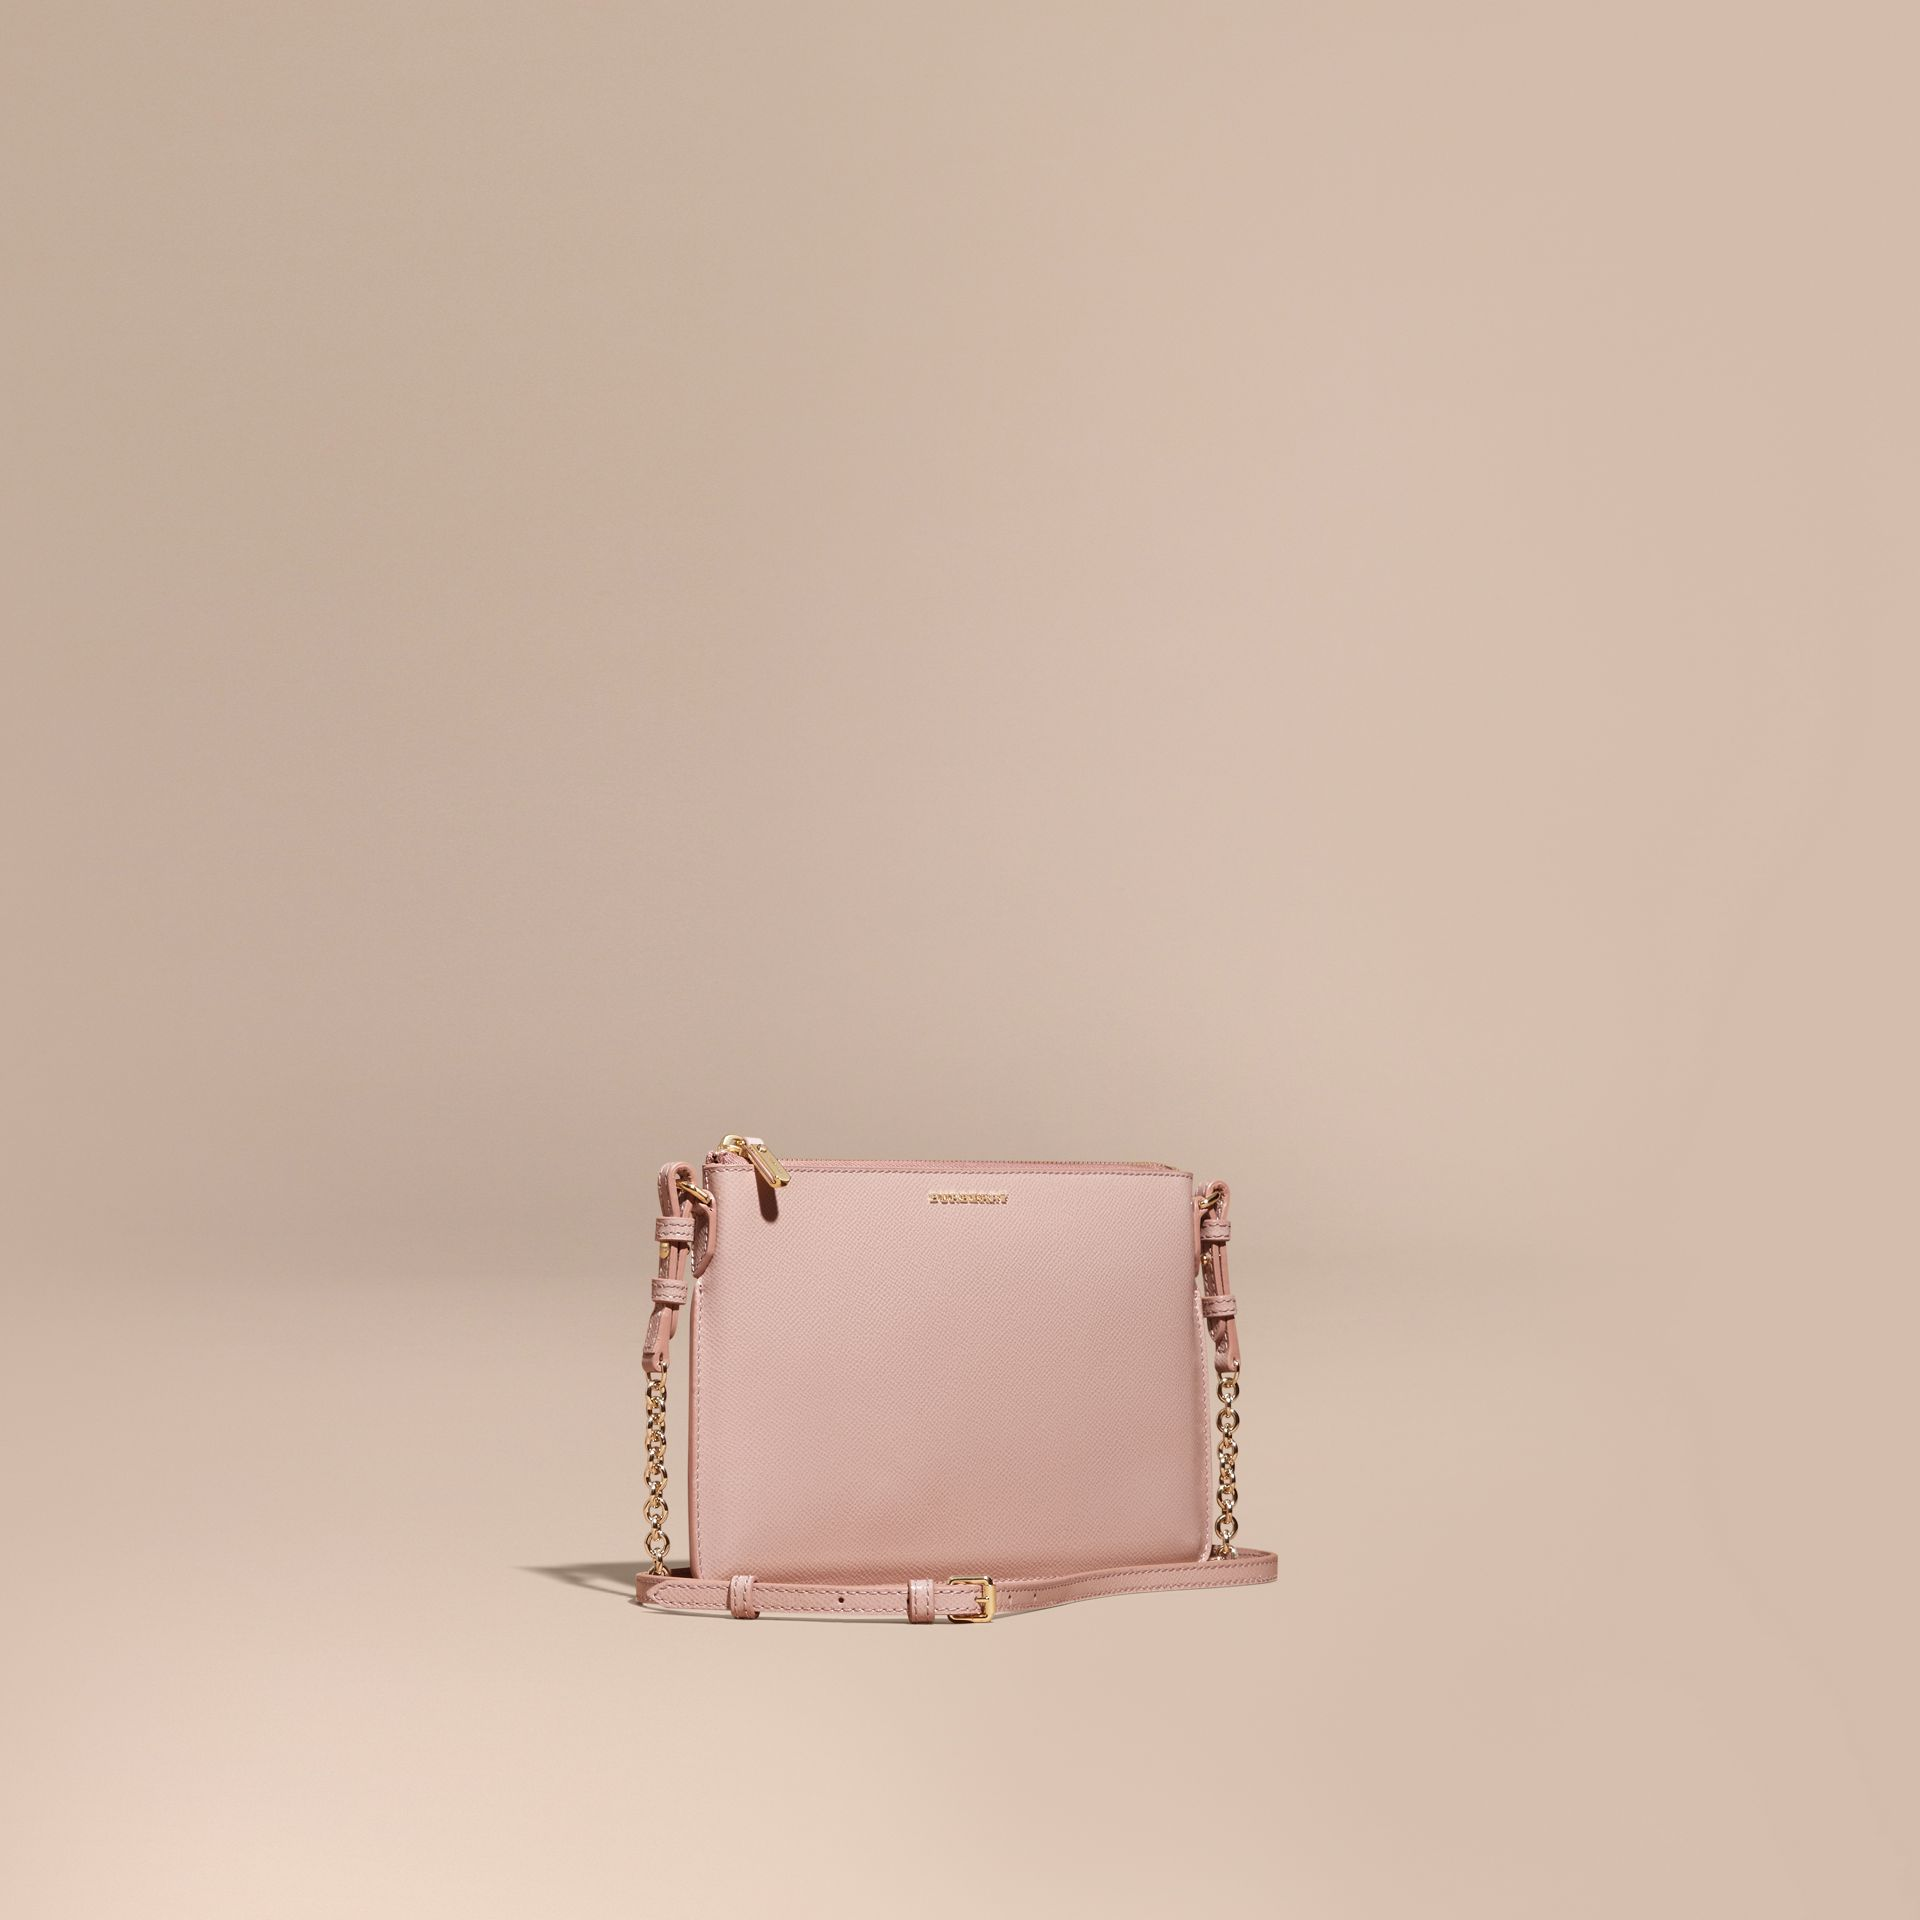 Ash rose Patent London Leather Clutch Bag Ash Rose - gallery image 1